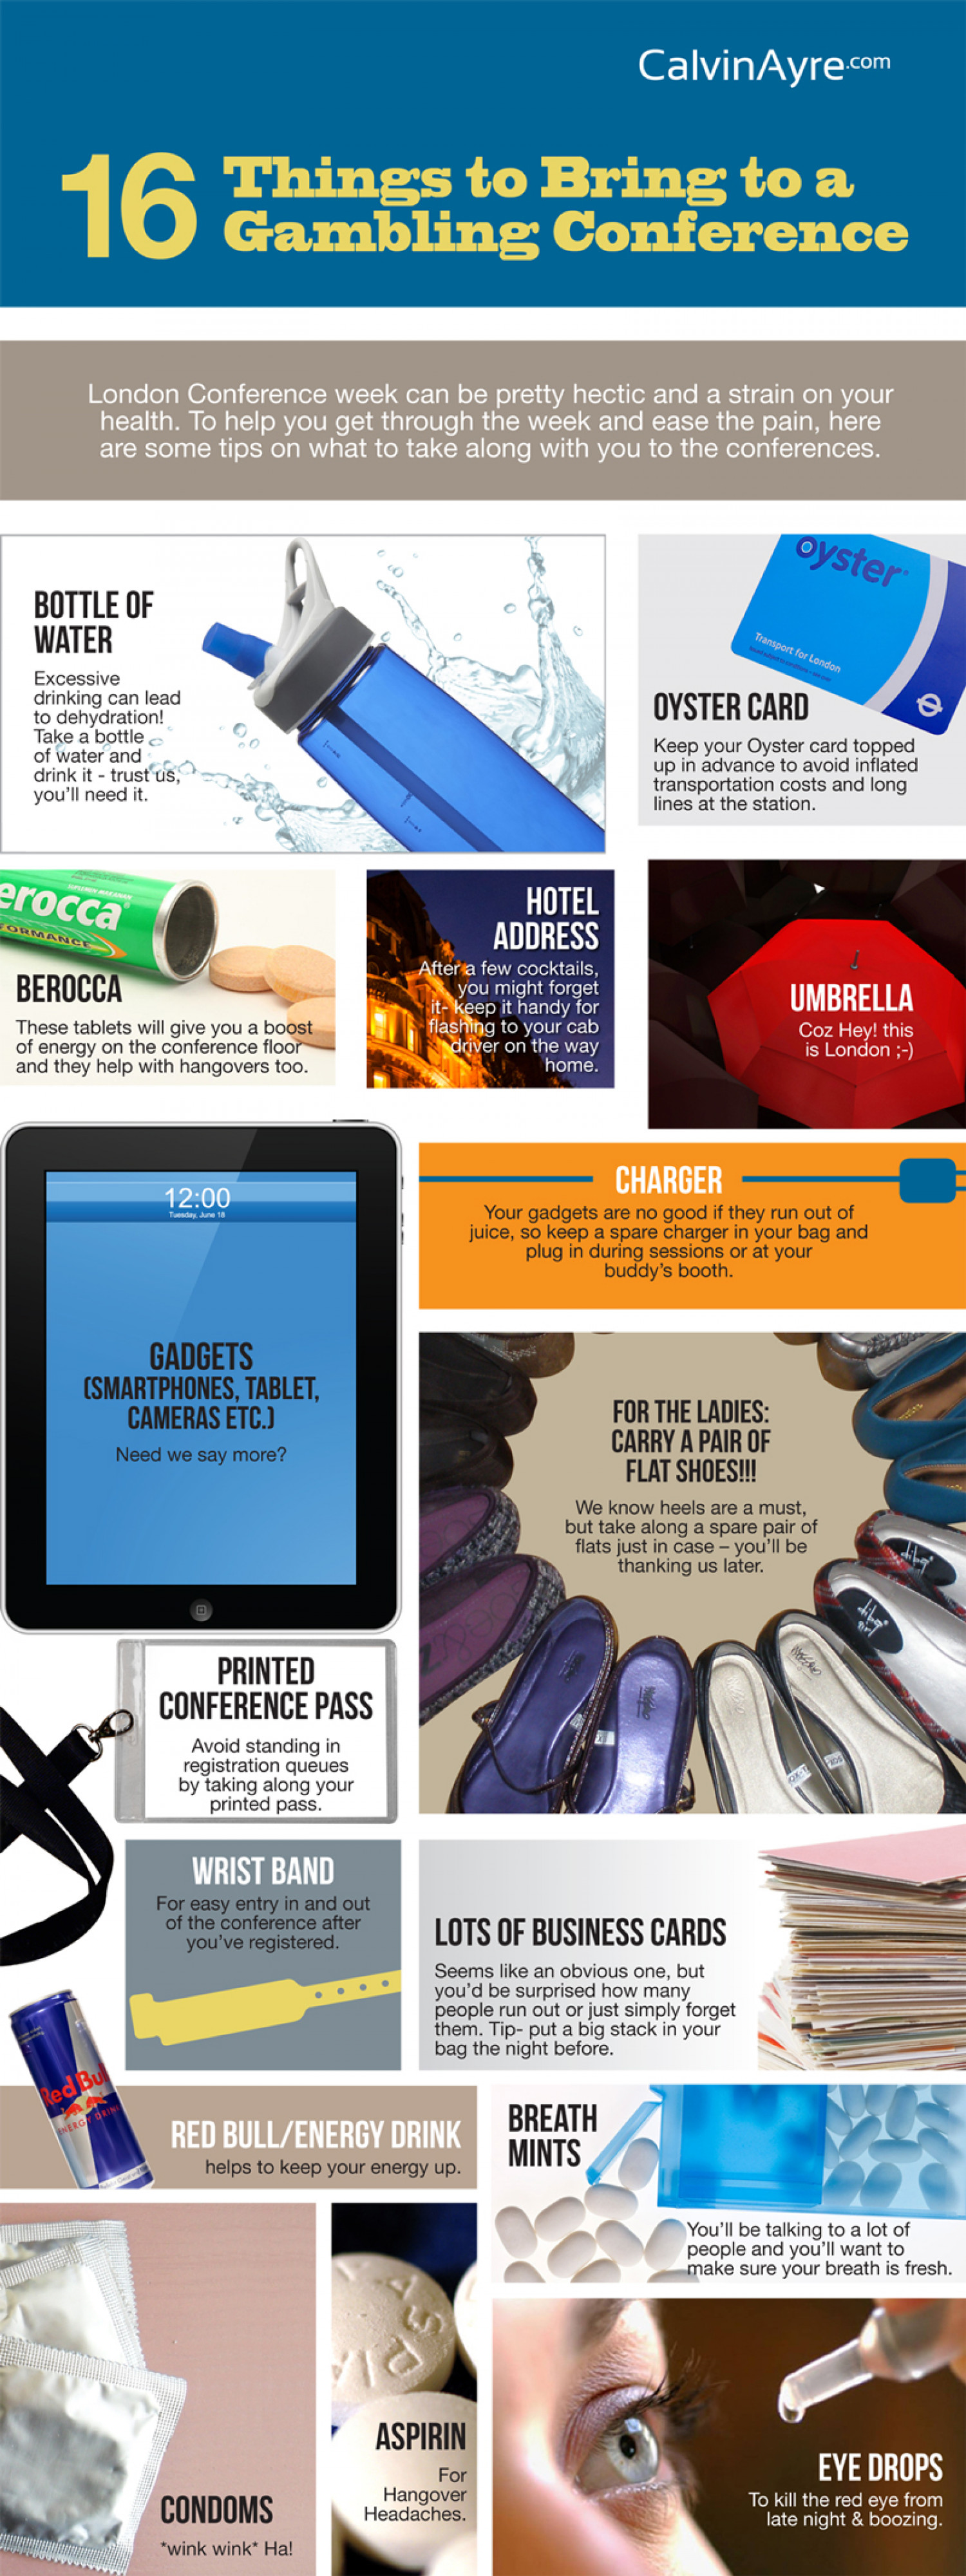 16 Things to Bring to a Gambling Conference Infographic